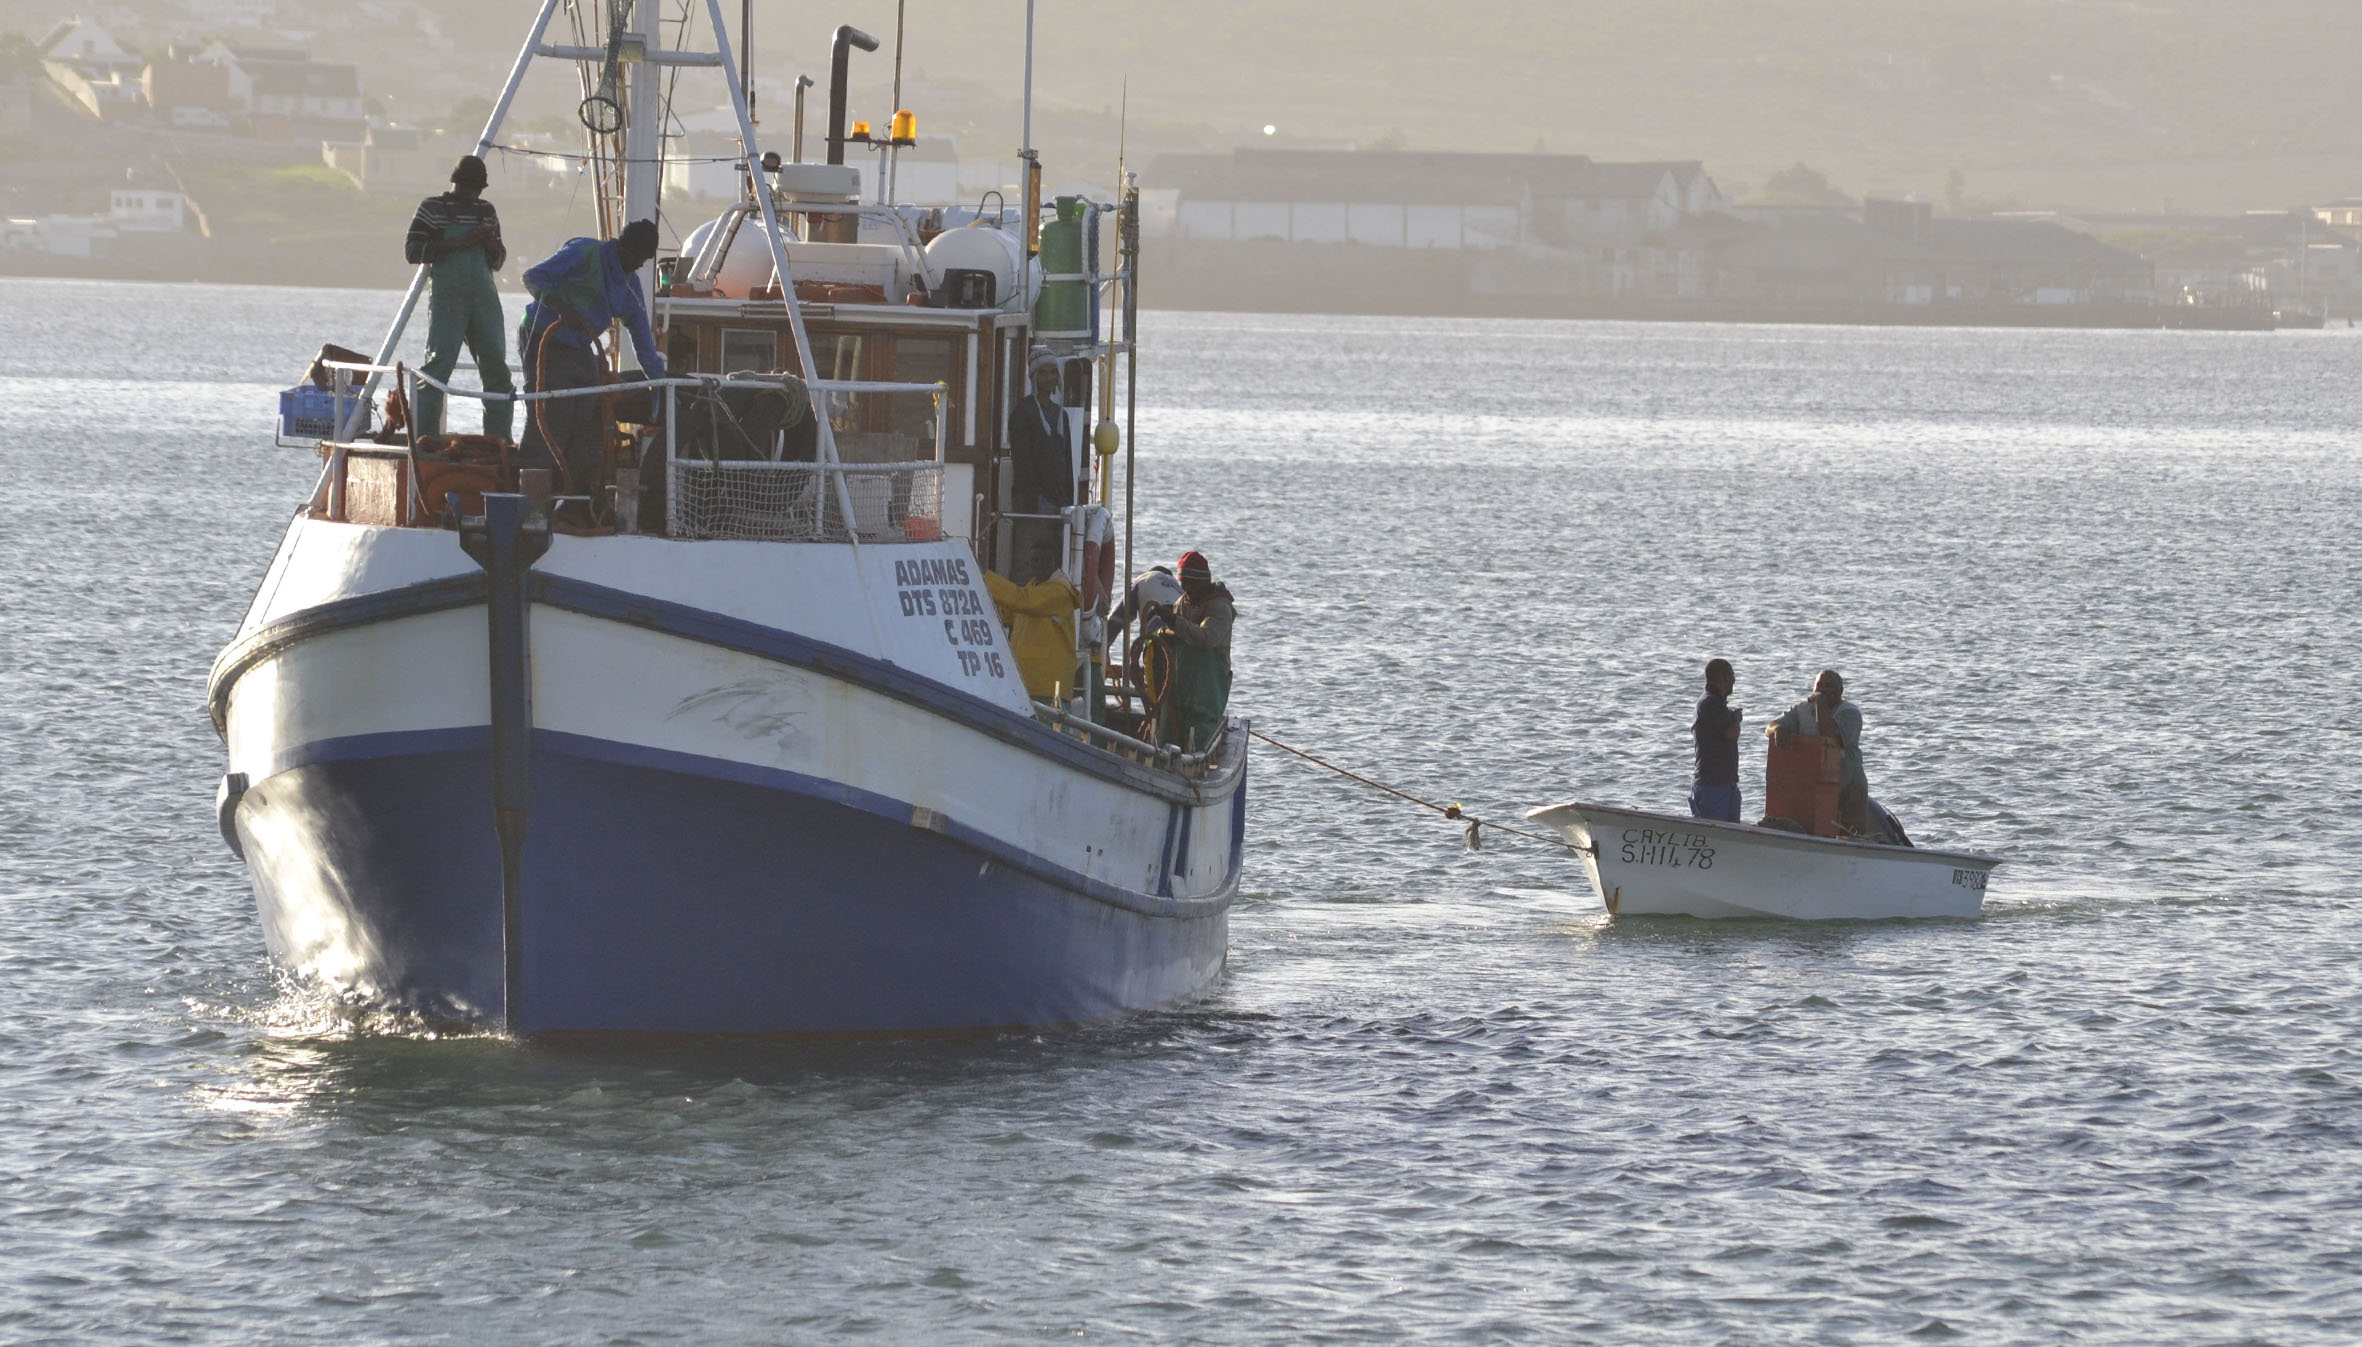 Christy Jordaan, 59, and his son Brandon 36, are towed in to Saldanha by the fishing boat Adamas. Picture Belinda Rother/NSRI.